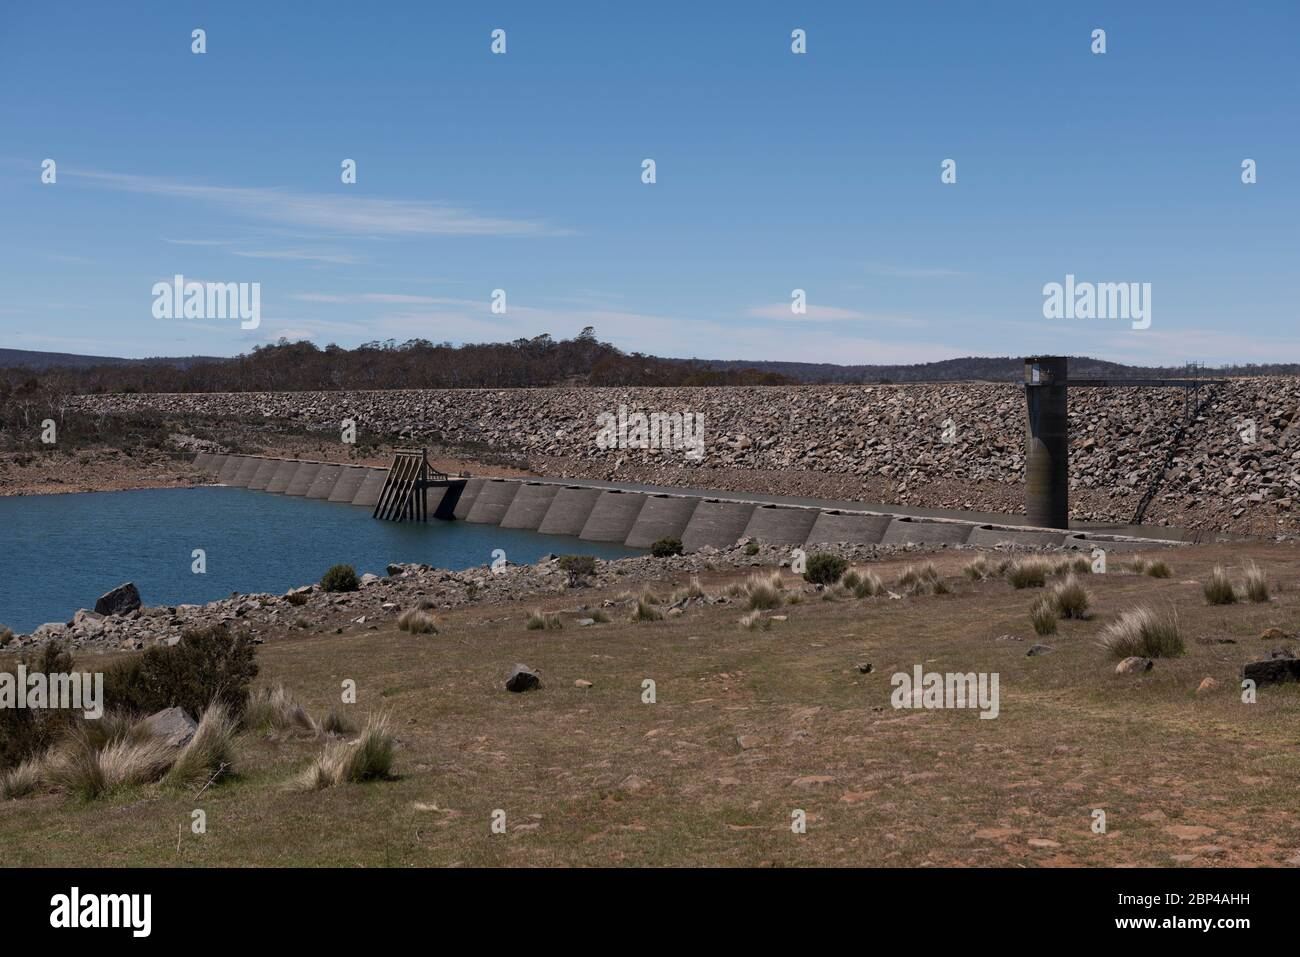 The Great Lake Is A Man Made Reservoir Created By The Miena Dam In The Central Northern Region Of Tasmania Australia Stock Photo Alamy